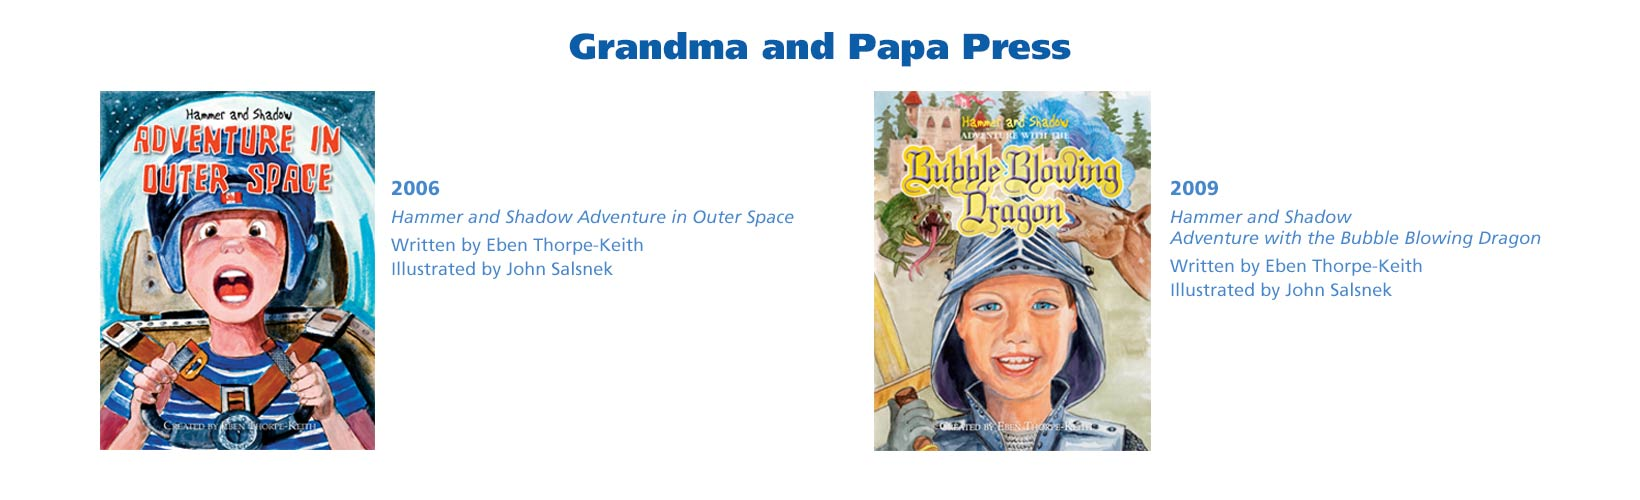 Books published by Grandma and Papa Press